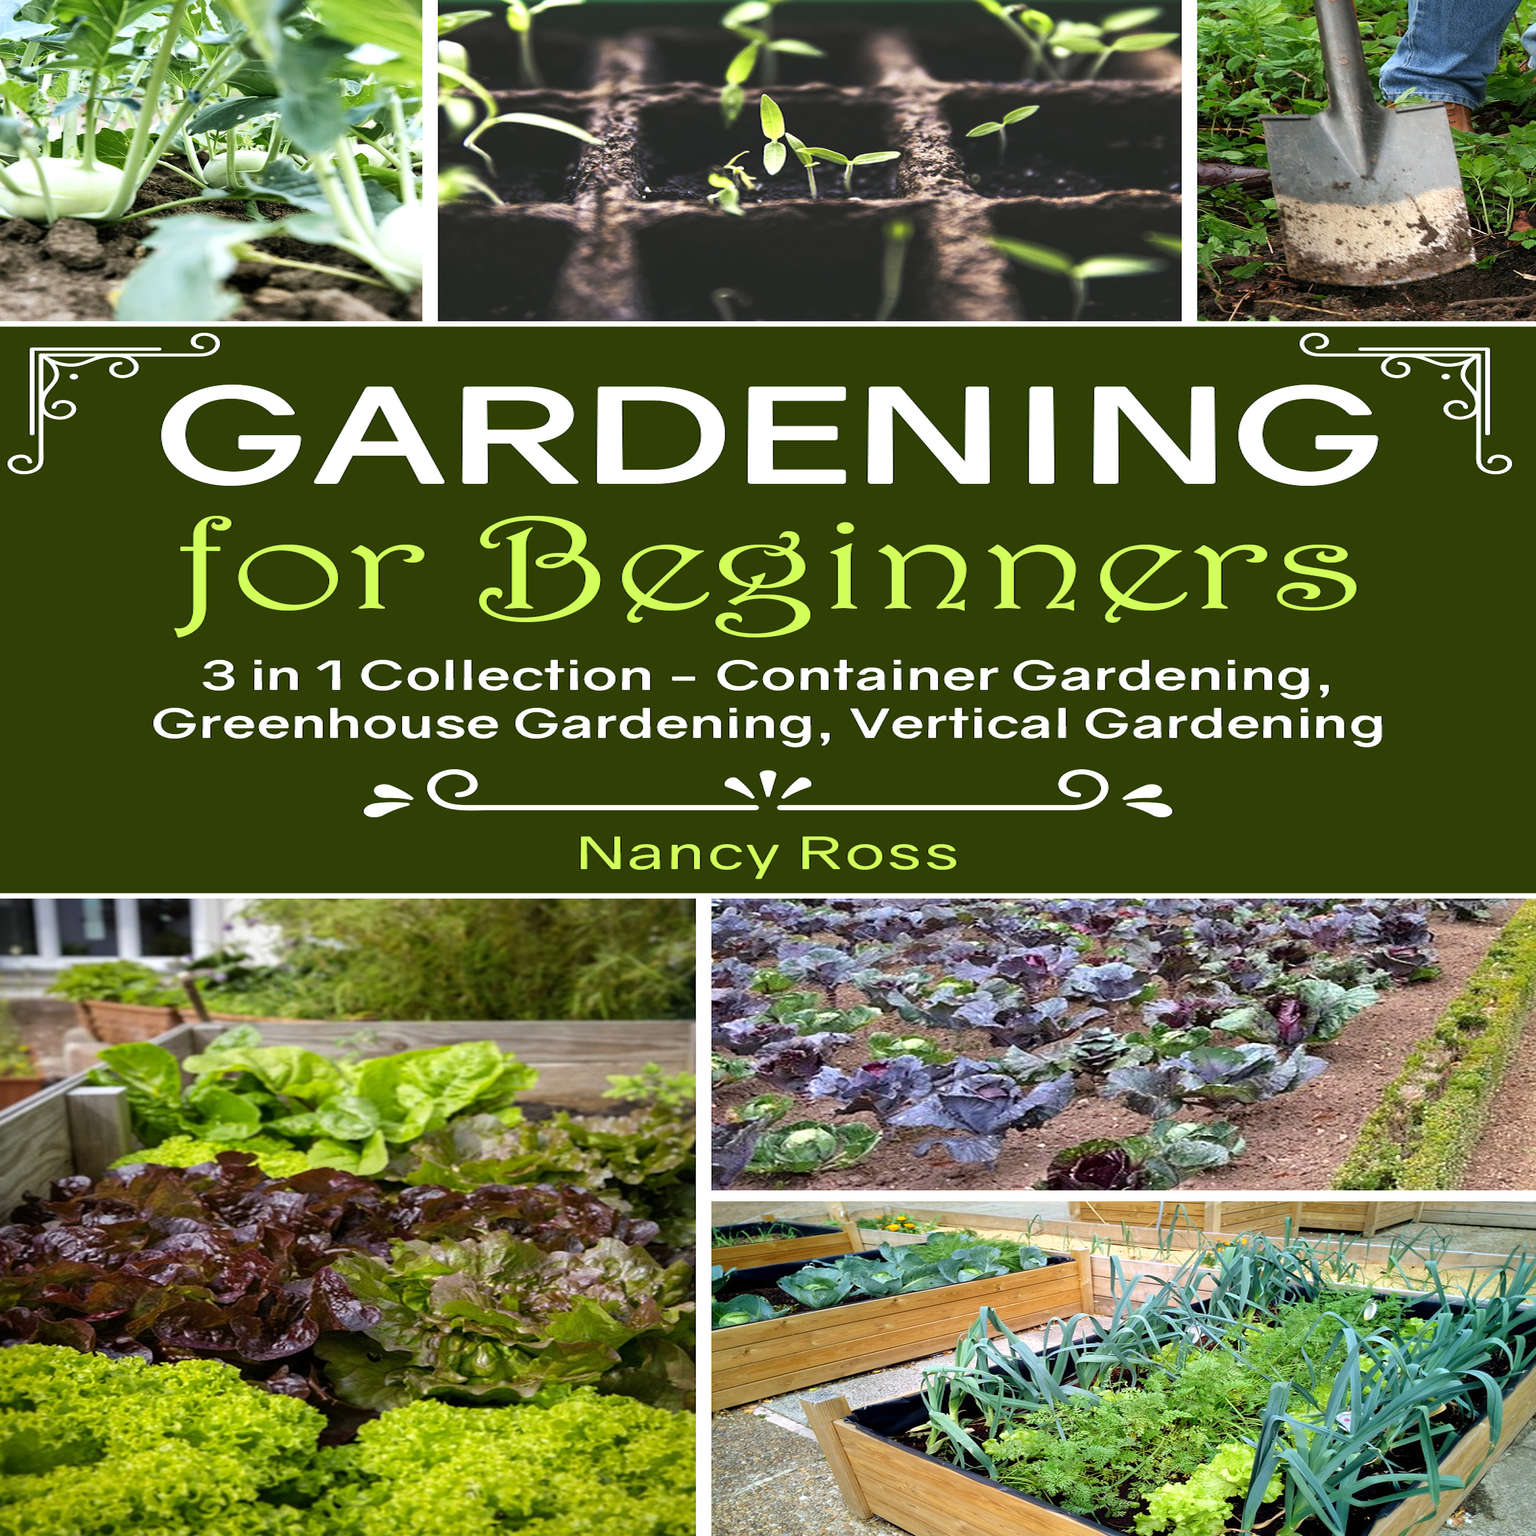 Gardening for Beginners: 3 in 1 Collection—Container Gardening, Greenhouse Gardening, Vertical Gardening Audiobook, by Nancy Ross